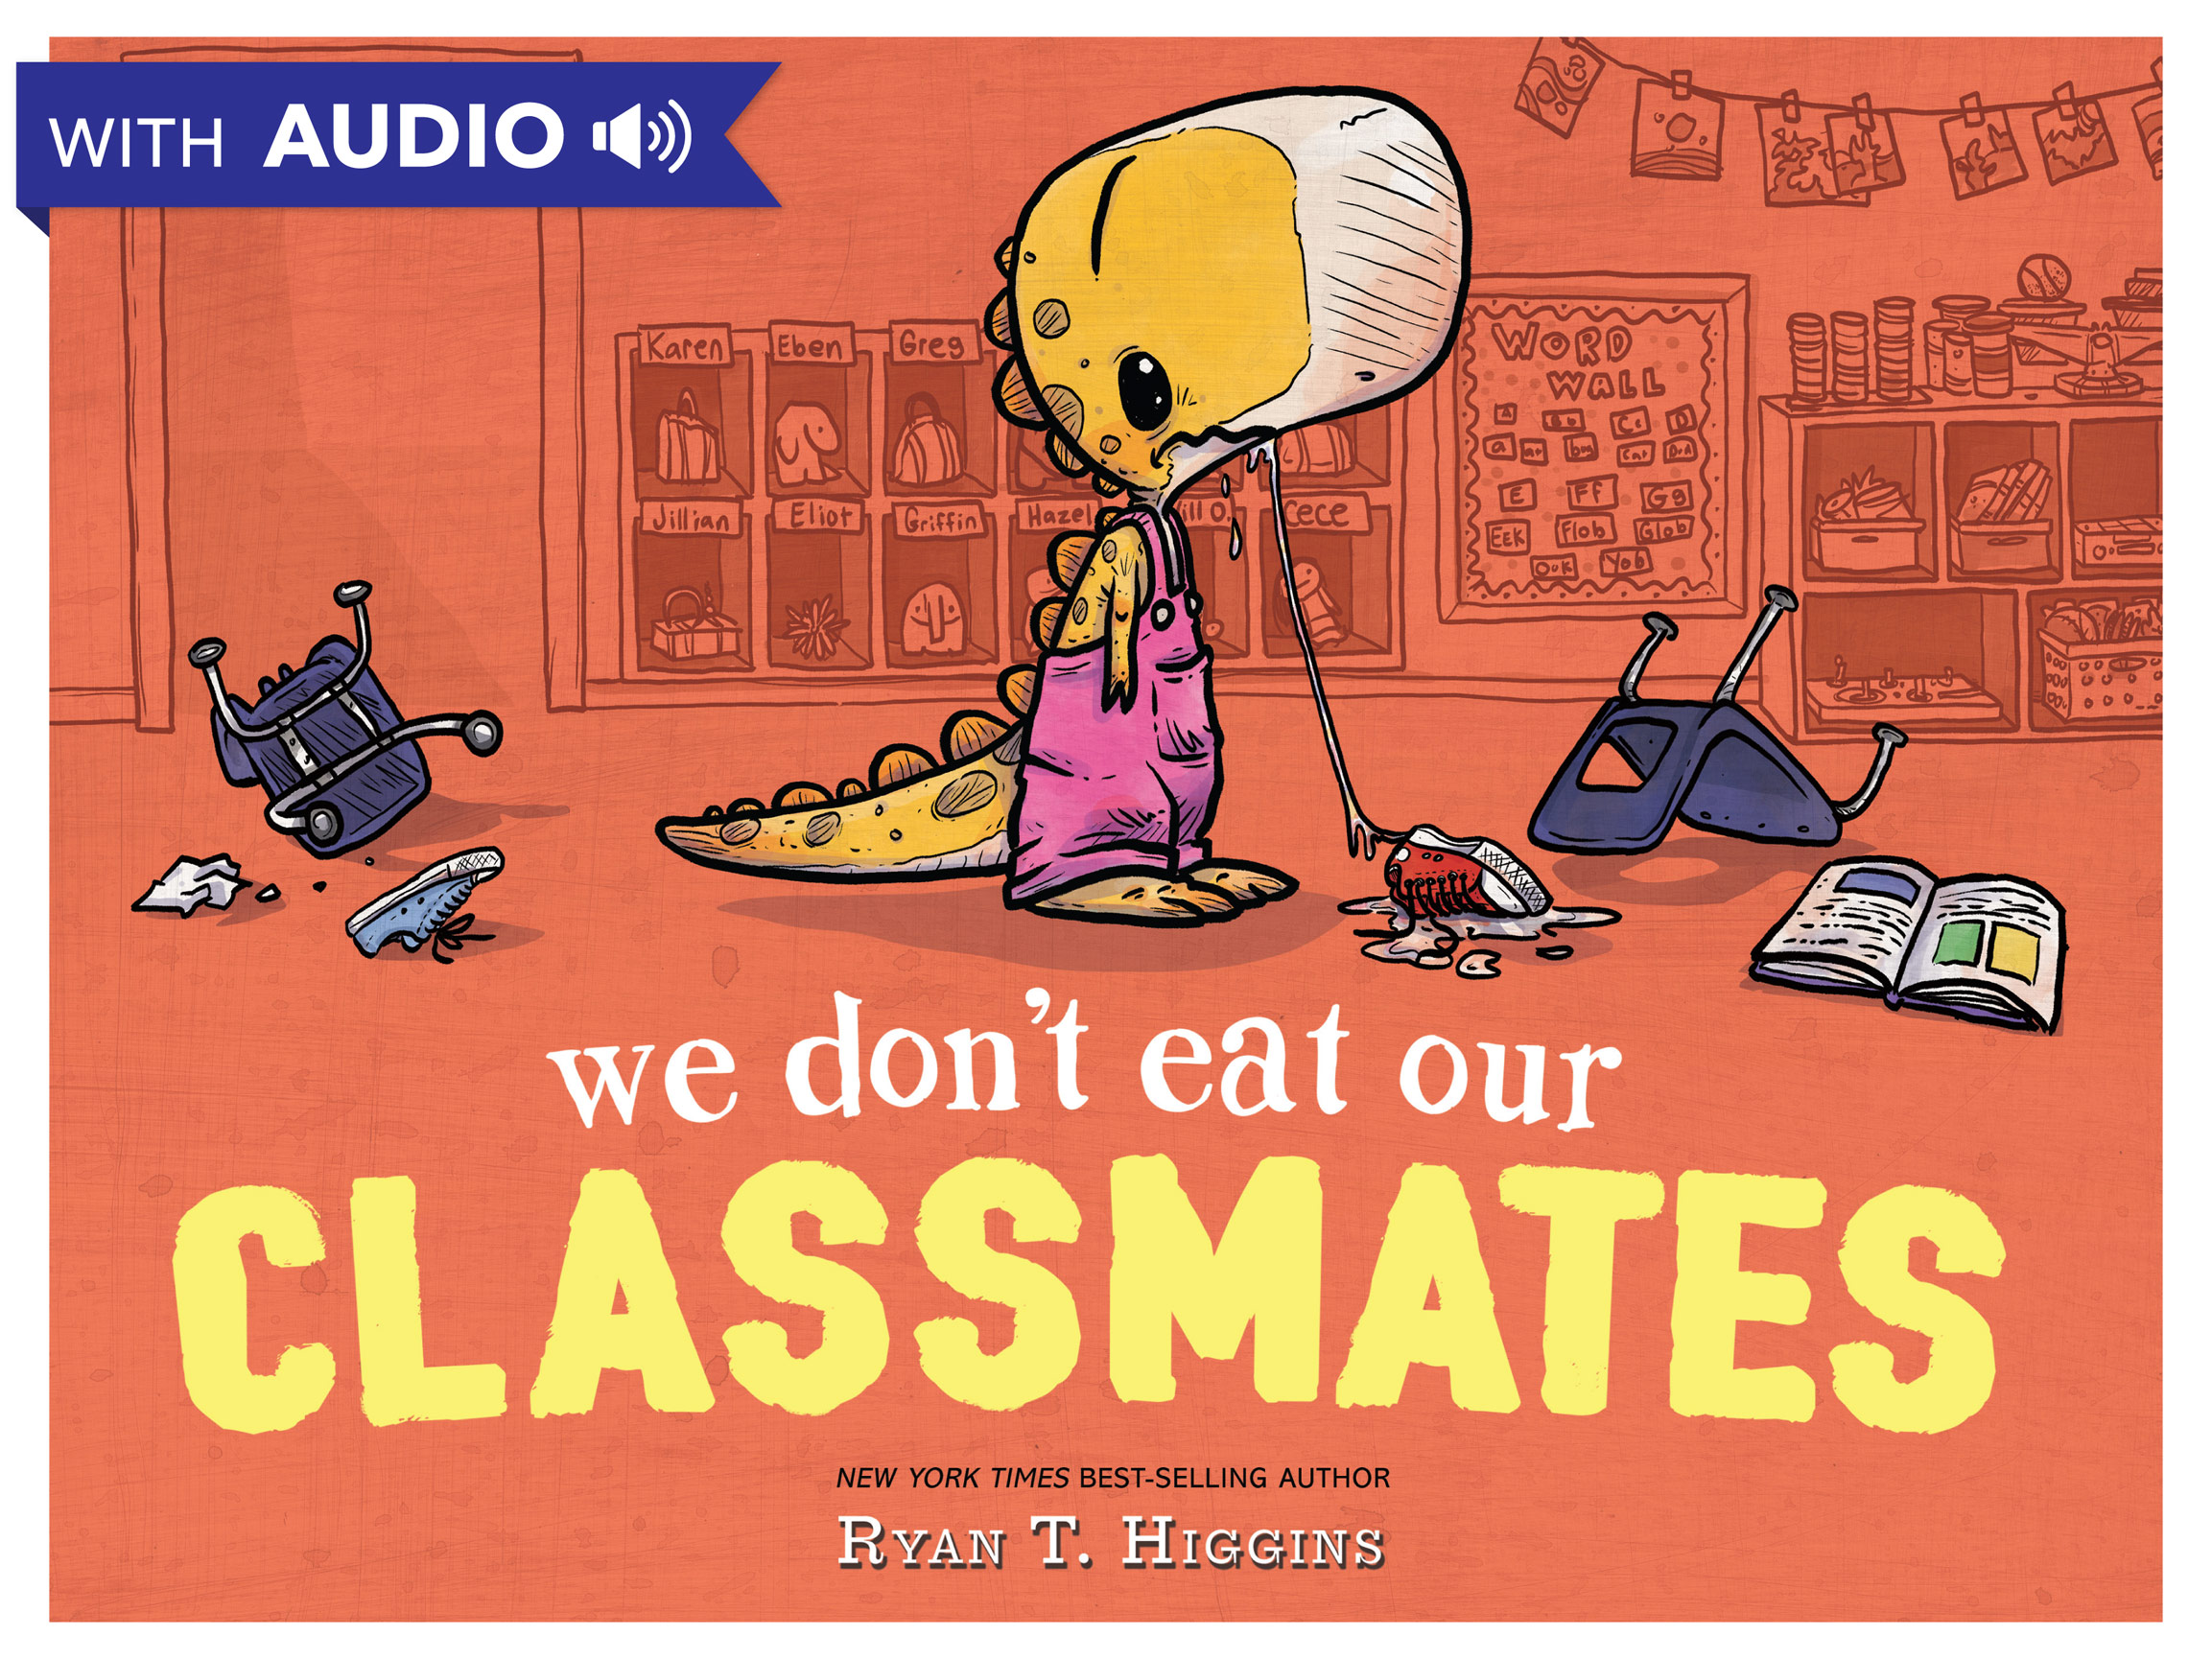 We Don't Eat Our Classmates A Disney Hyperion E-book With Audio